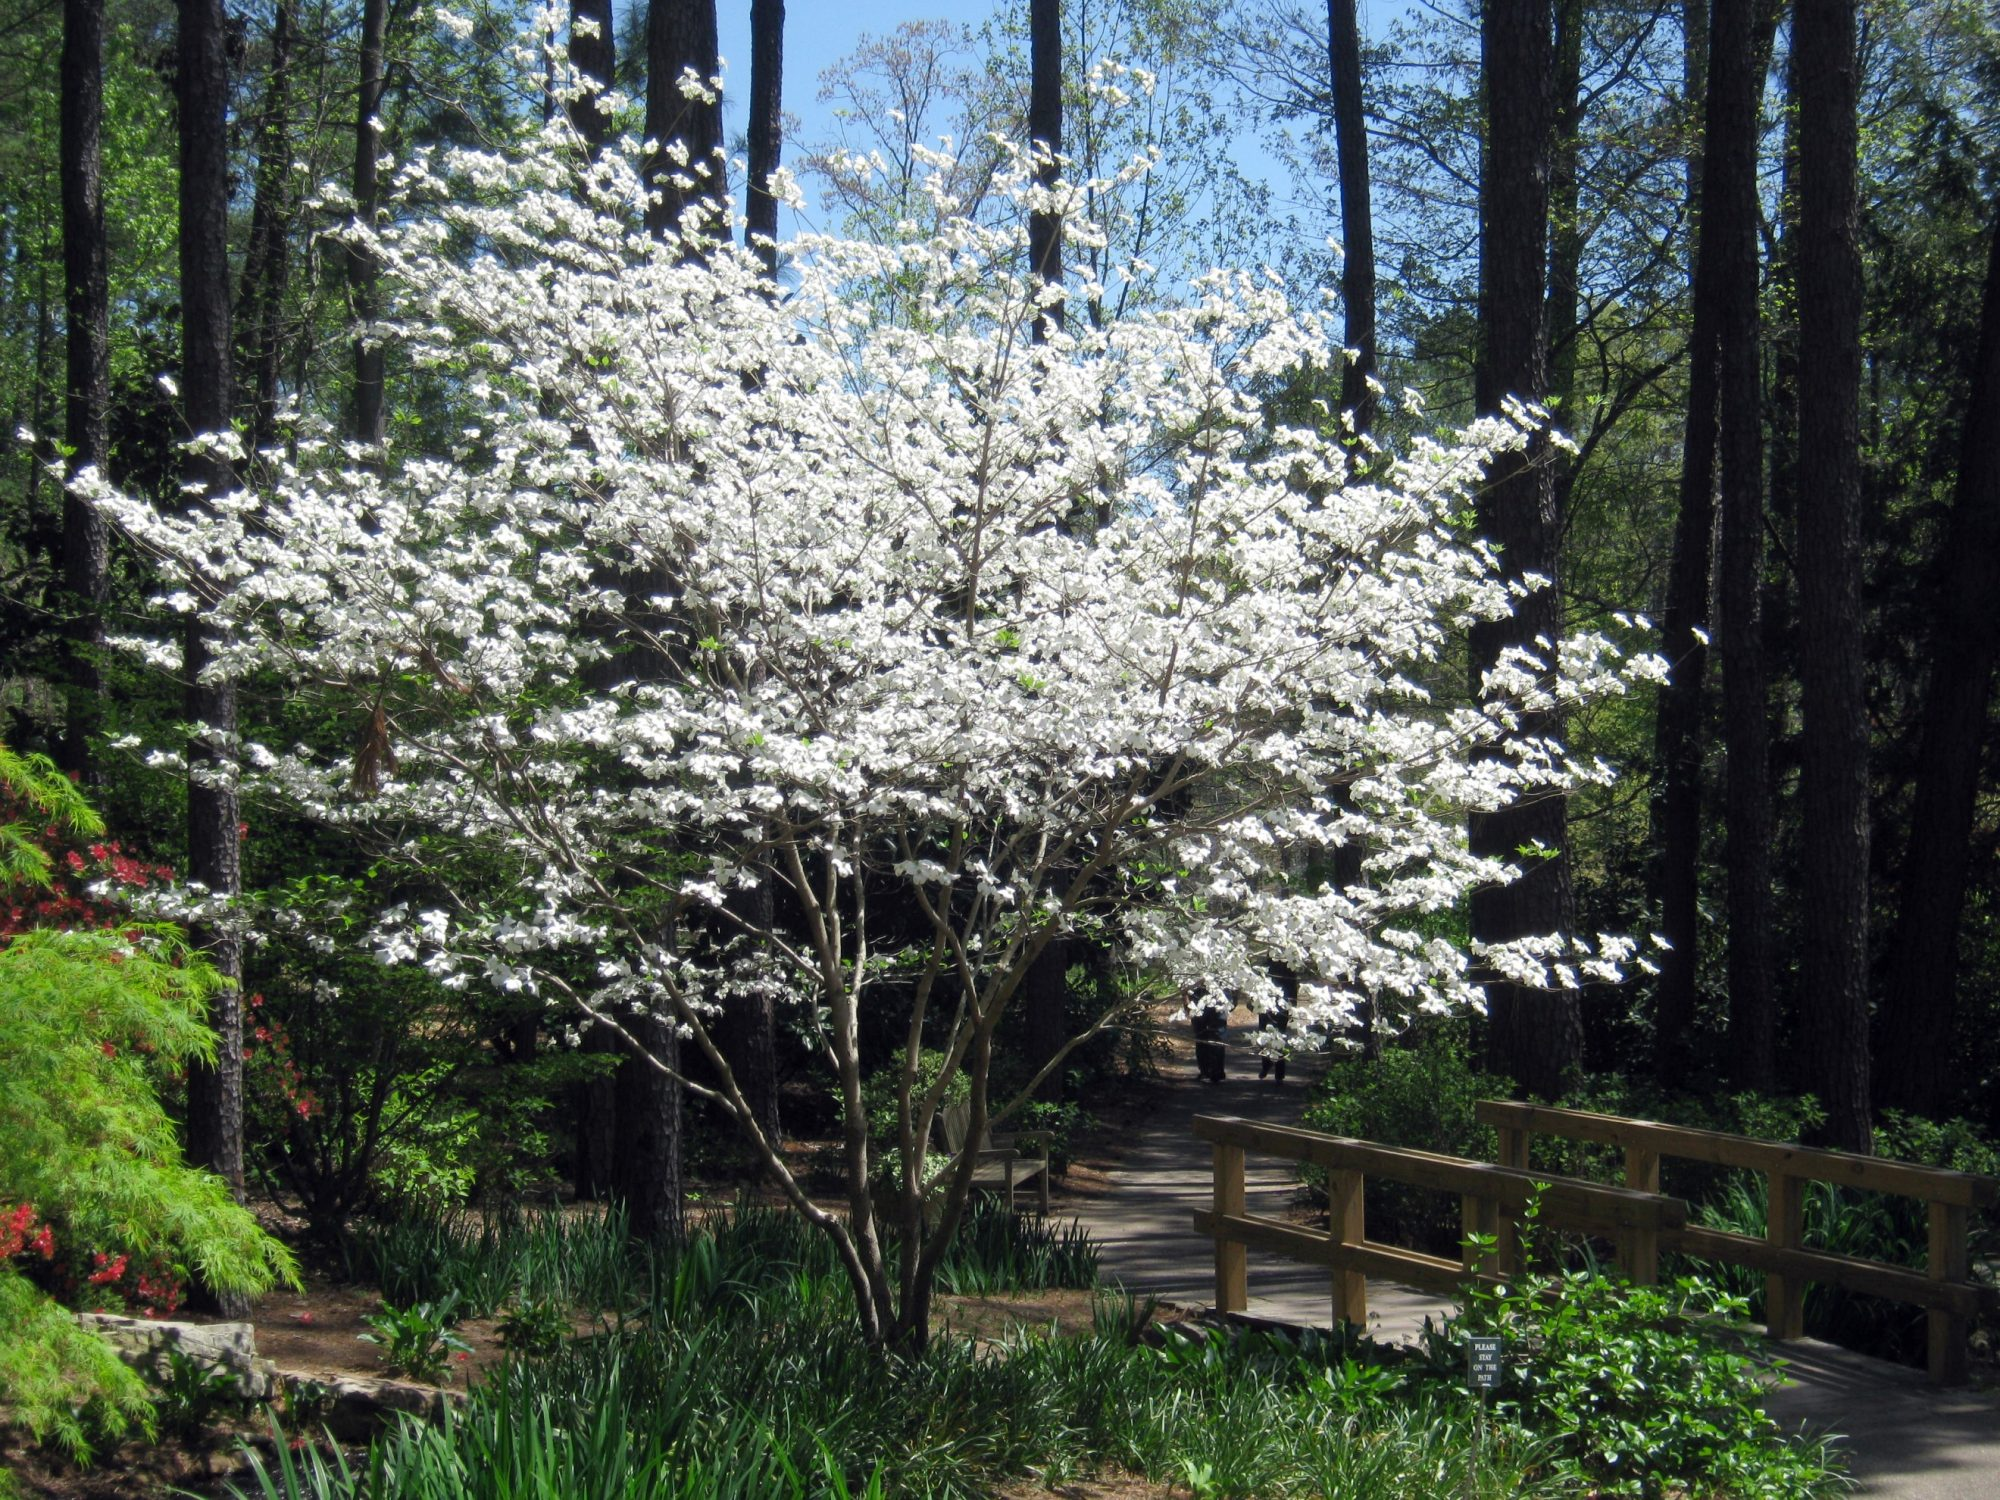 dogwood-004-copy.jpg